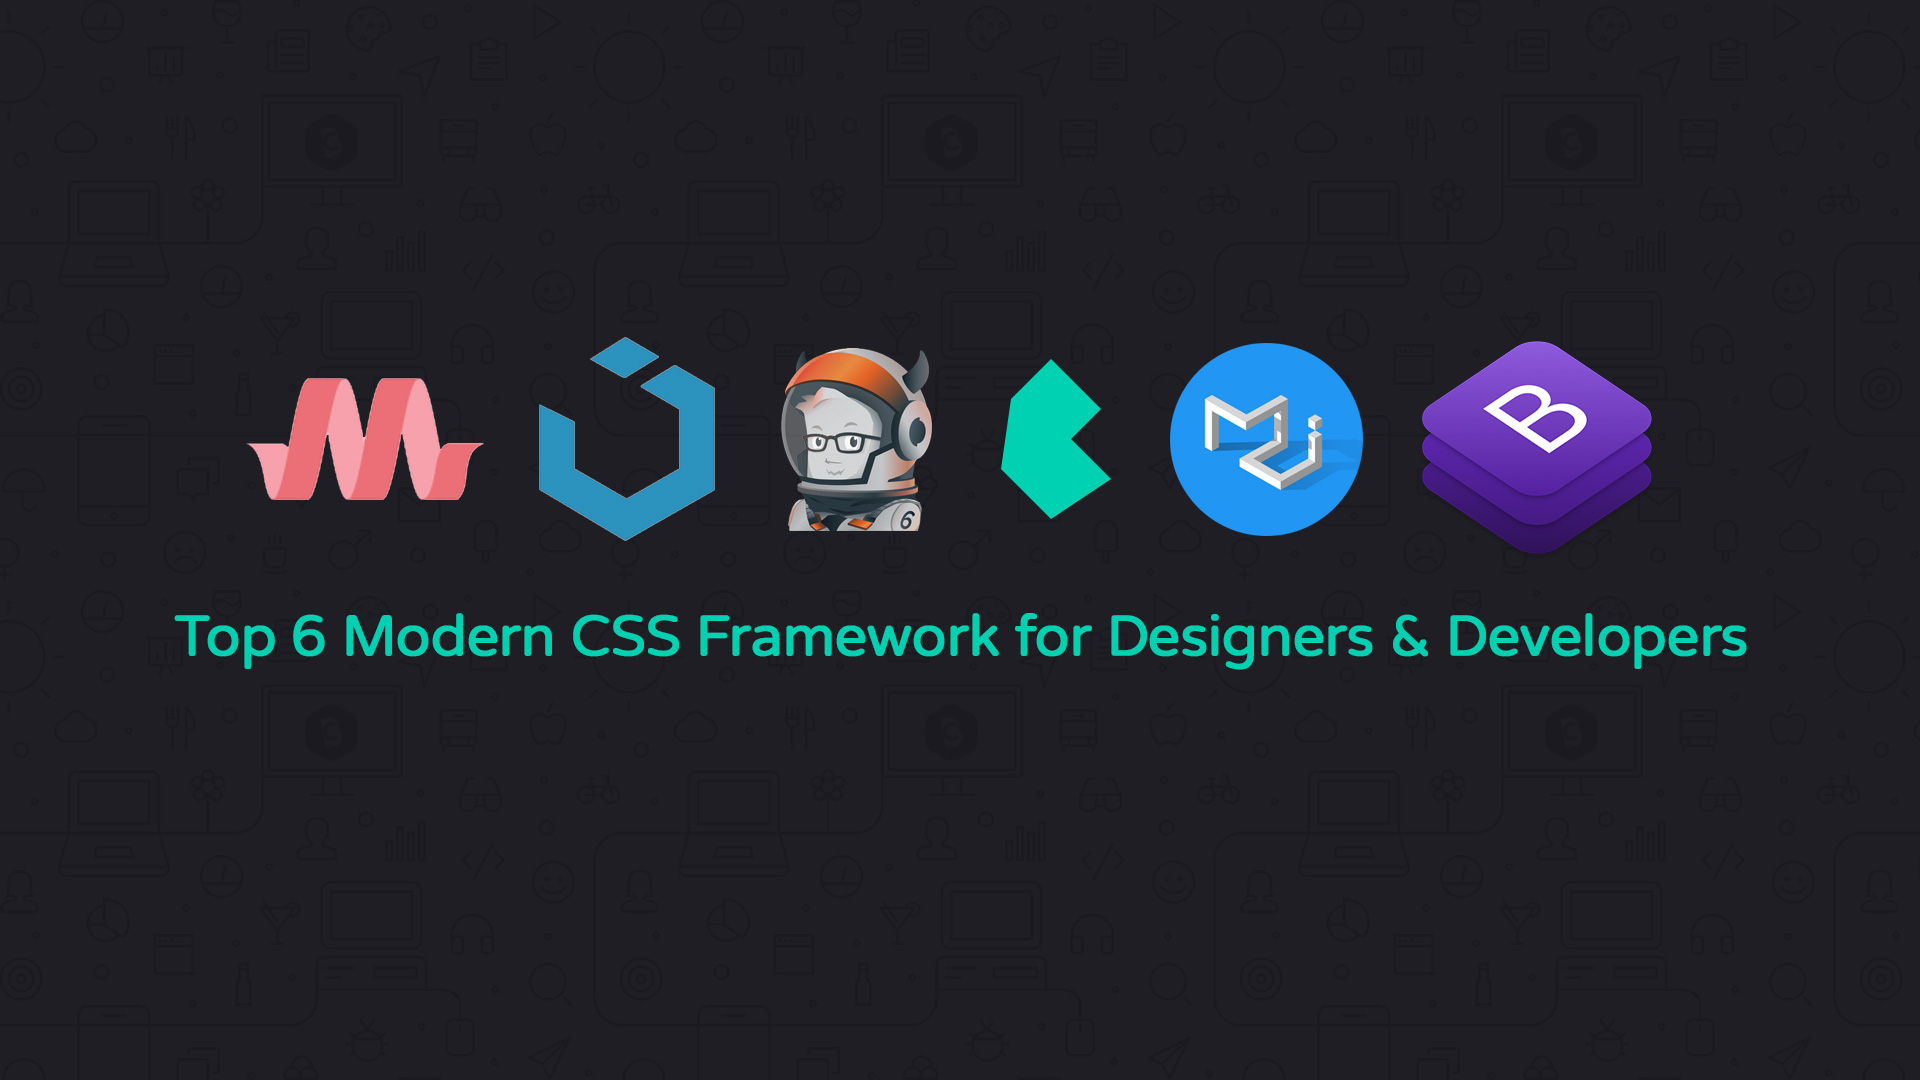 Top 6 Modern CSS Framework for Designers & Developers - Code